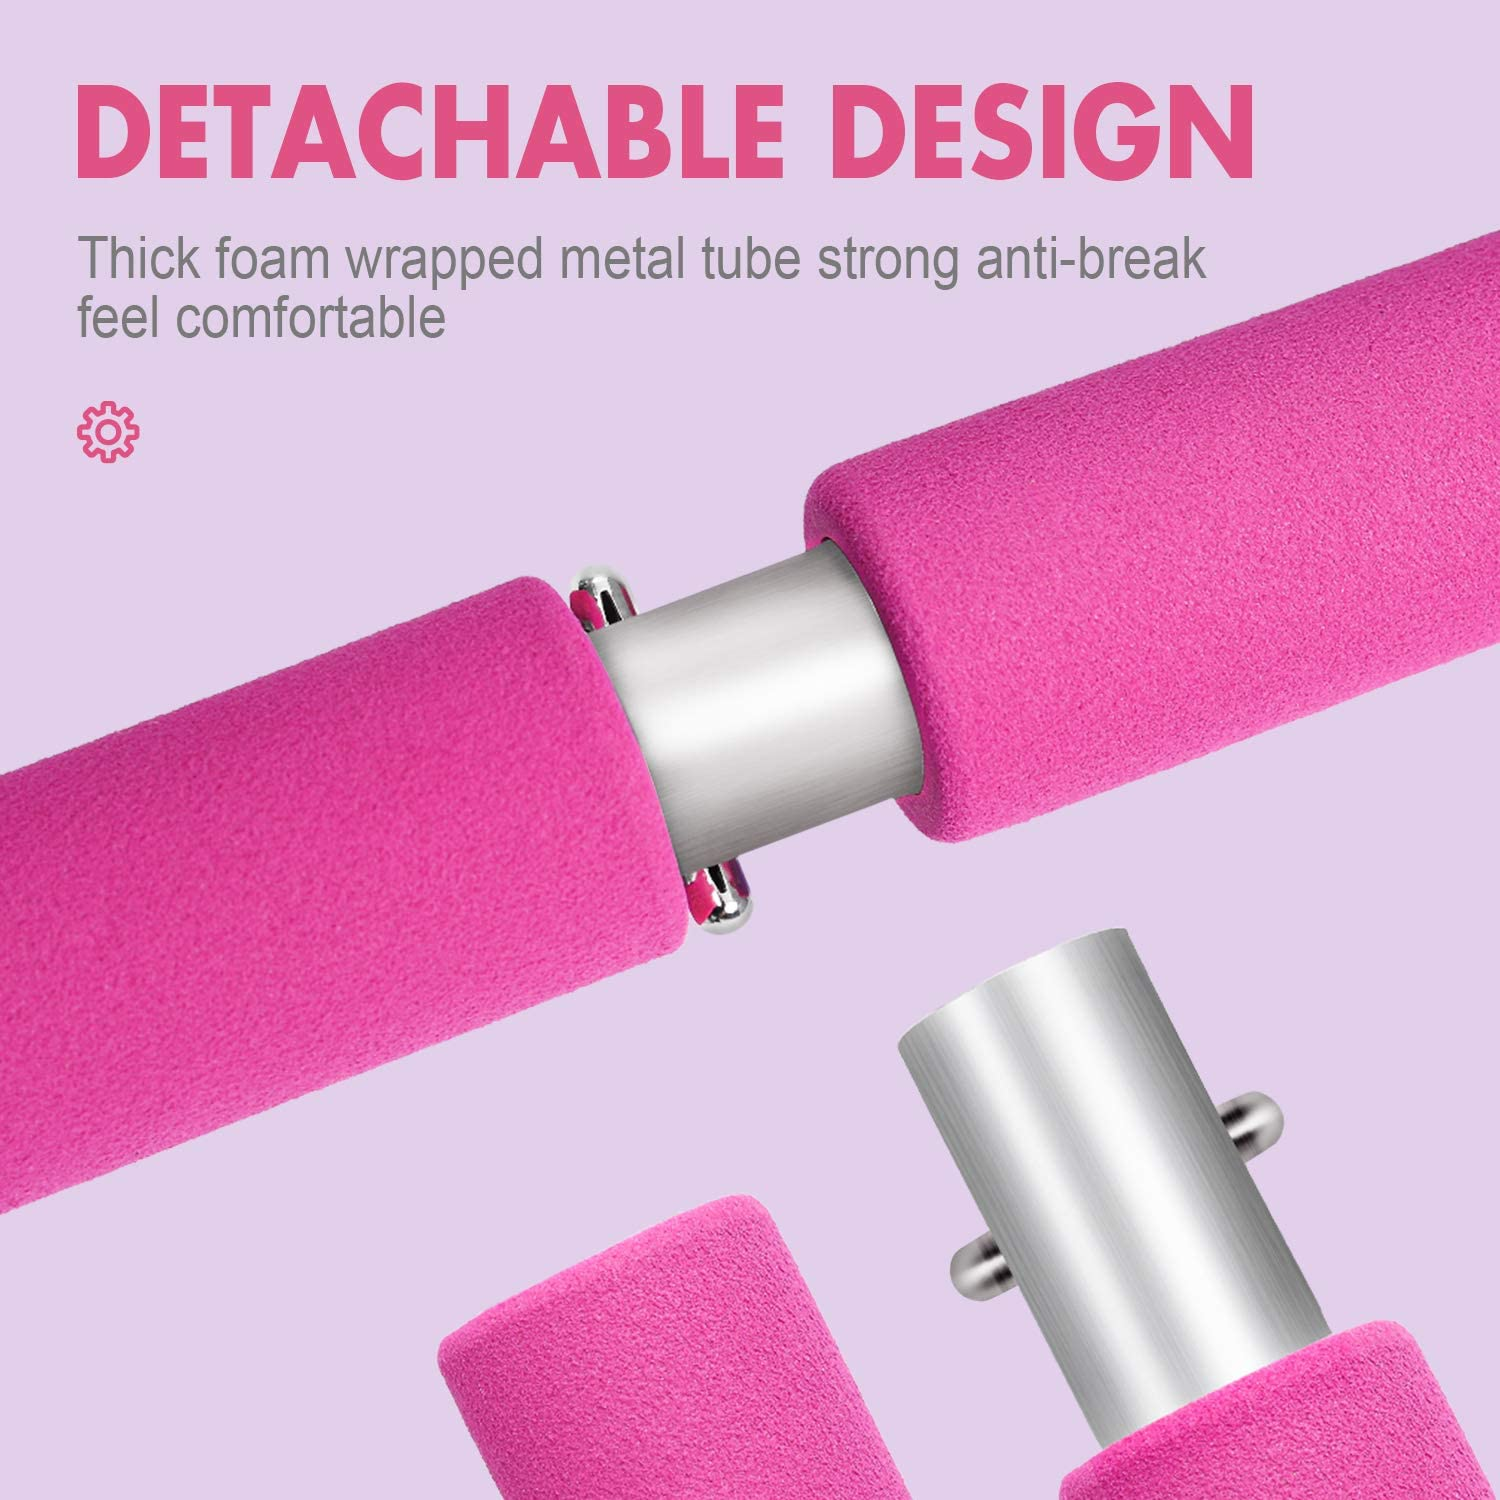 Max4out Pilates Bar Kit Portable Pilates Stick for Home Gym Improve Fitness, Build Muscle, Strength Exercises, Pink : Sports & Outdoors